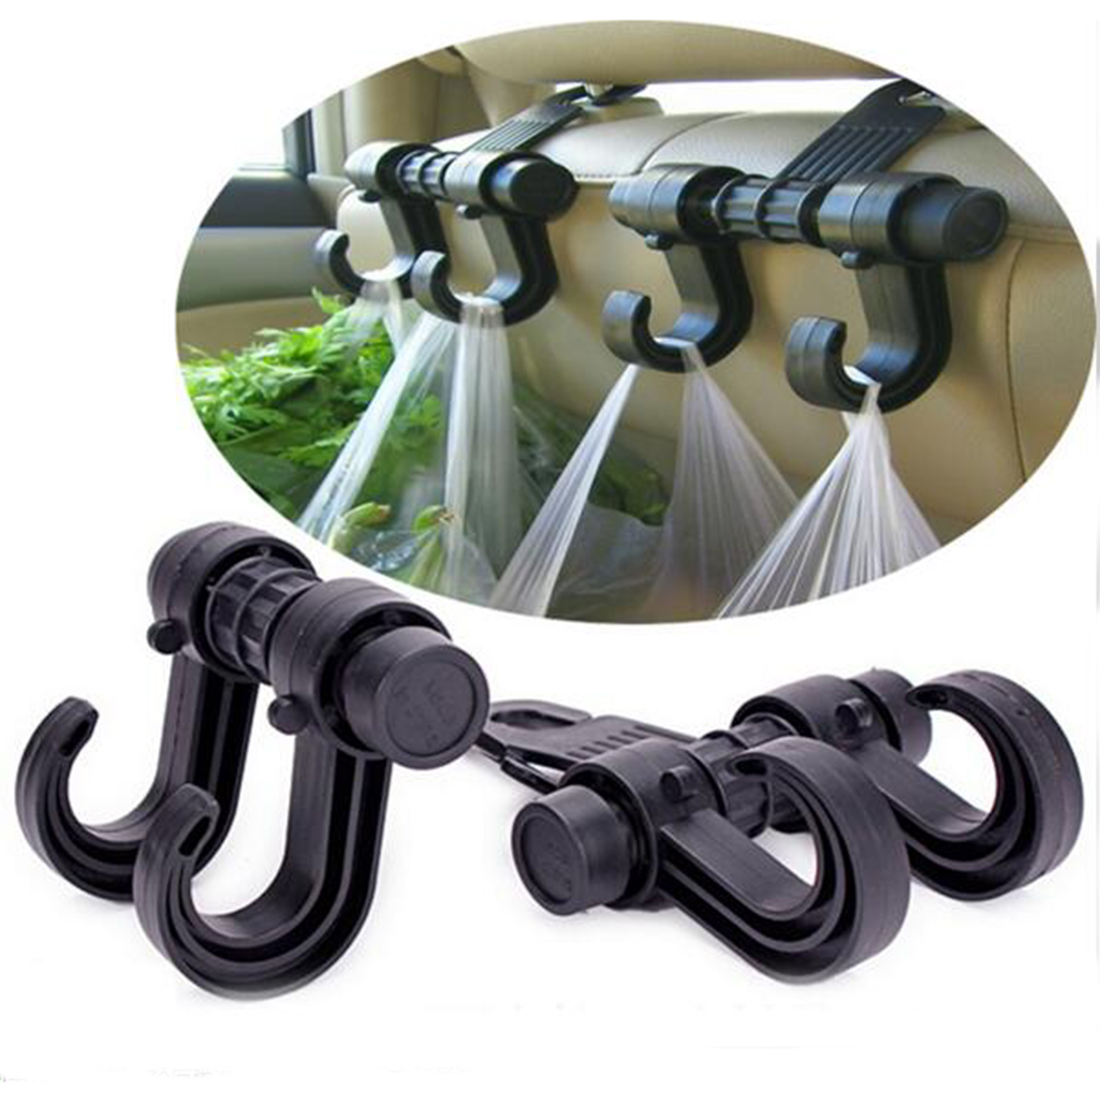 new double auto car back seat headrest hanger holder hooks clips for bag purse cloth grocery. Black Bedroom Furniture Sets. Home Design Ideas